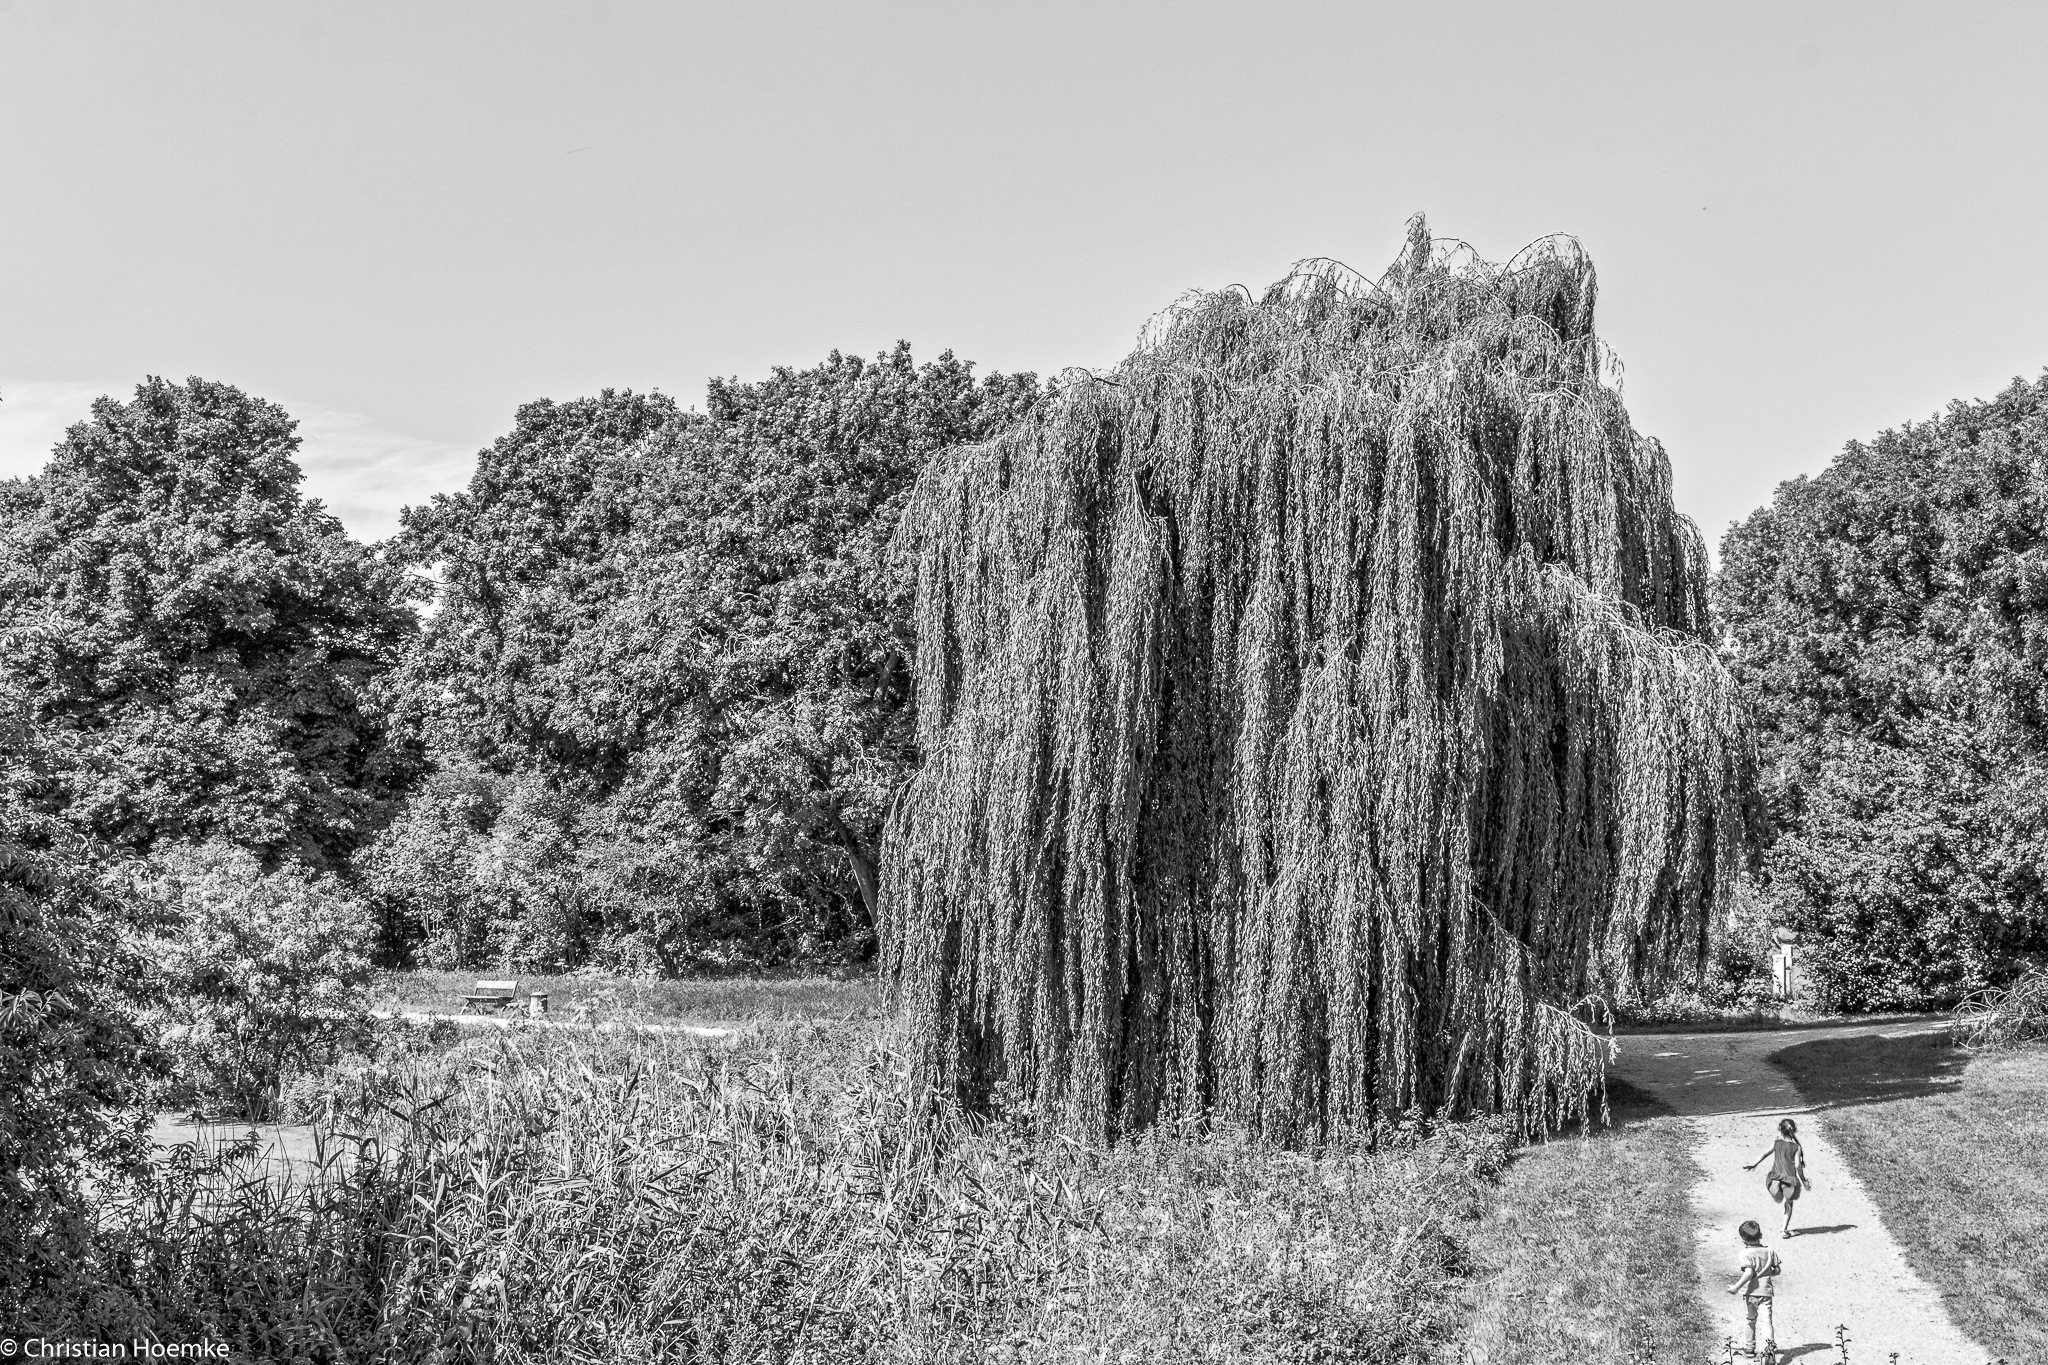 Weeping Willow by Christian Hoemke